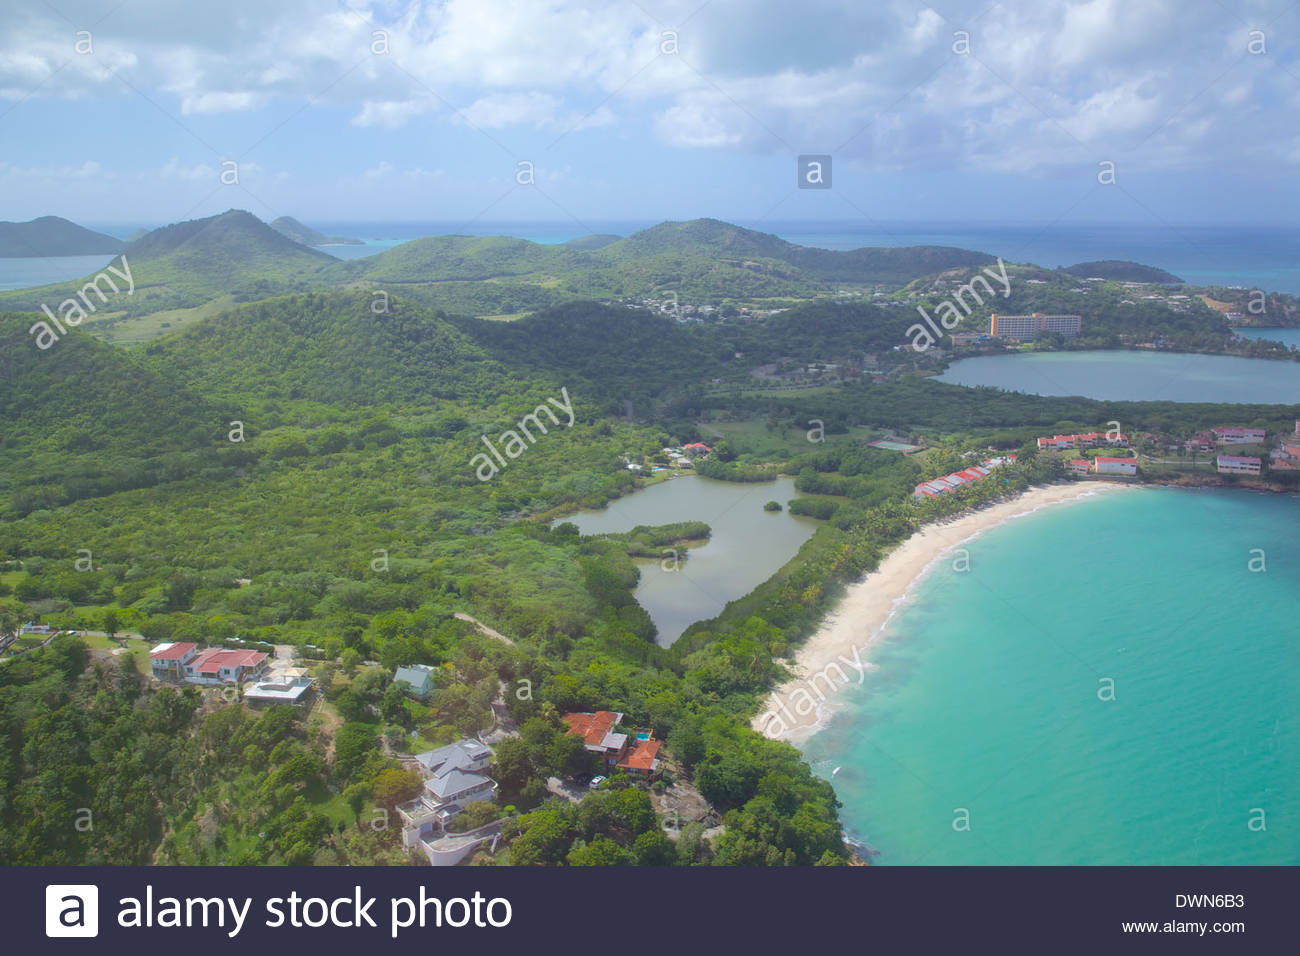 Mary's Point Leeward Islands, Five Islands Stock Photos & Five Islands Stock Images - Alamy